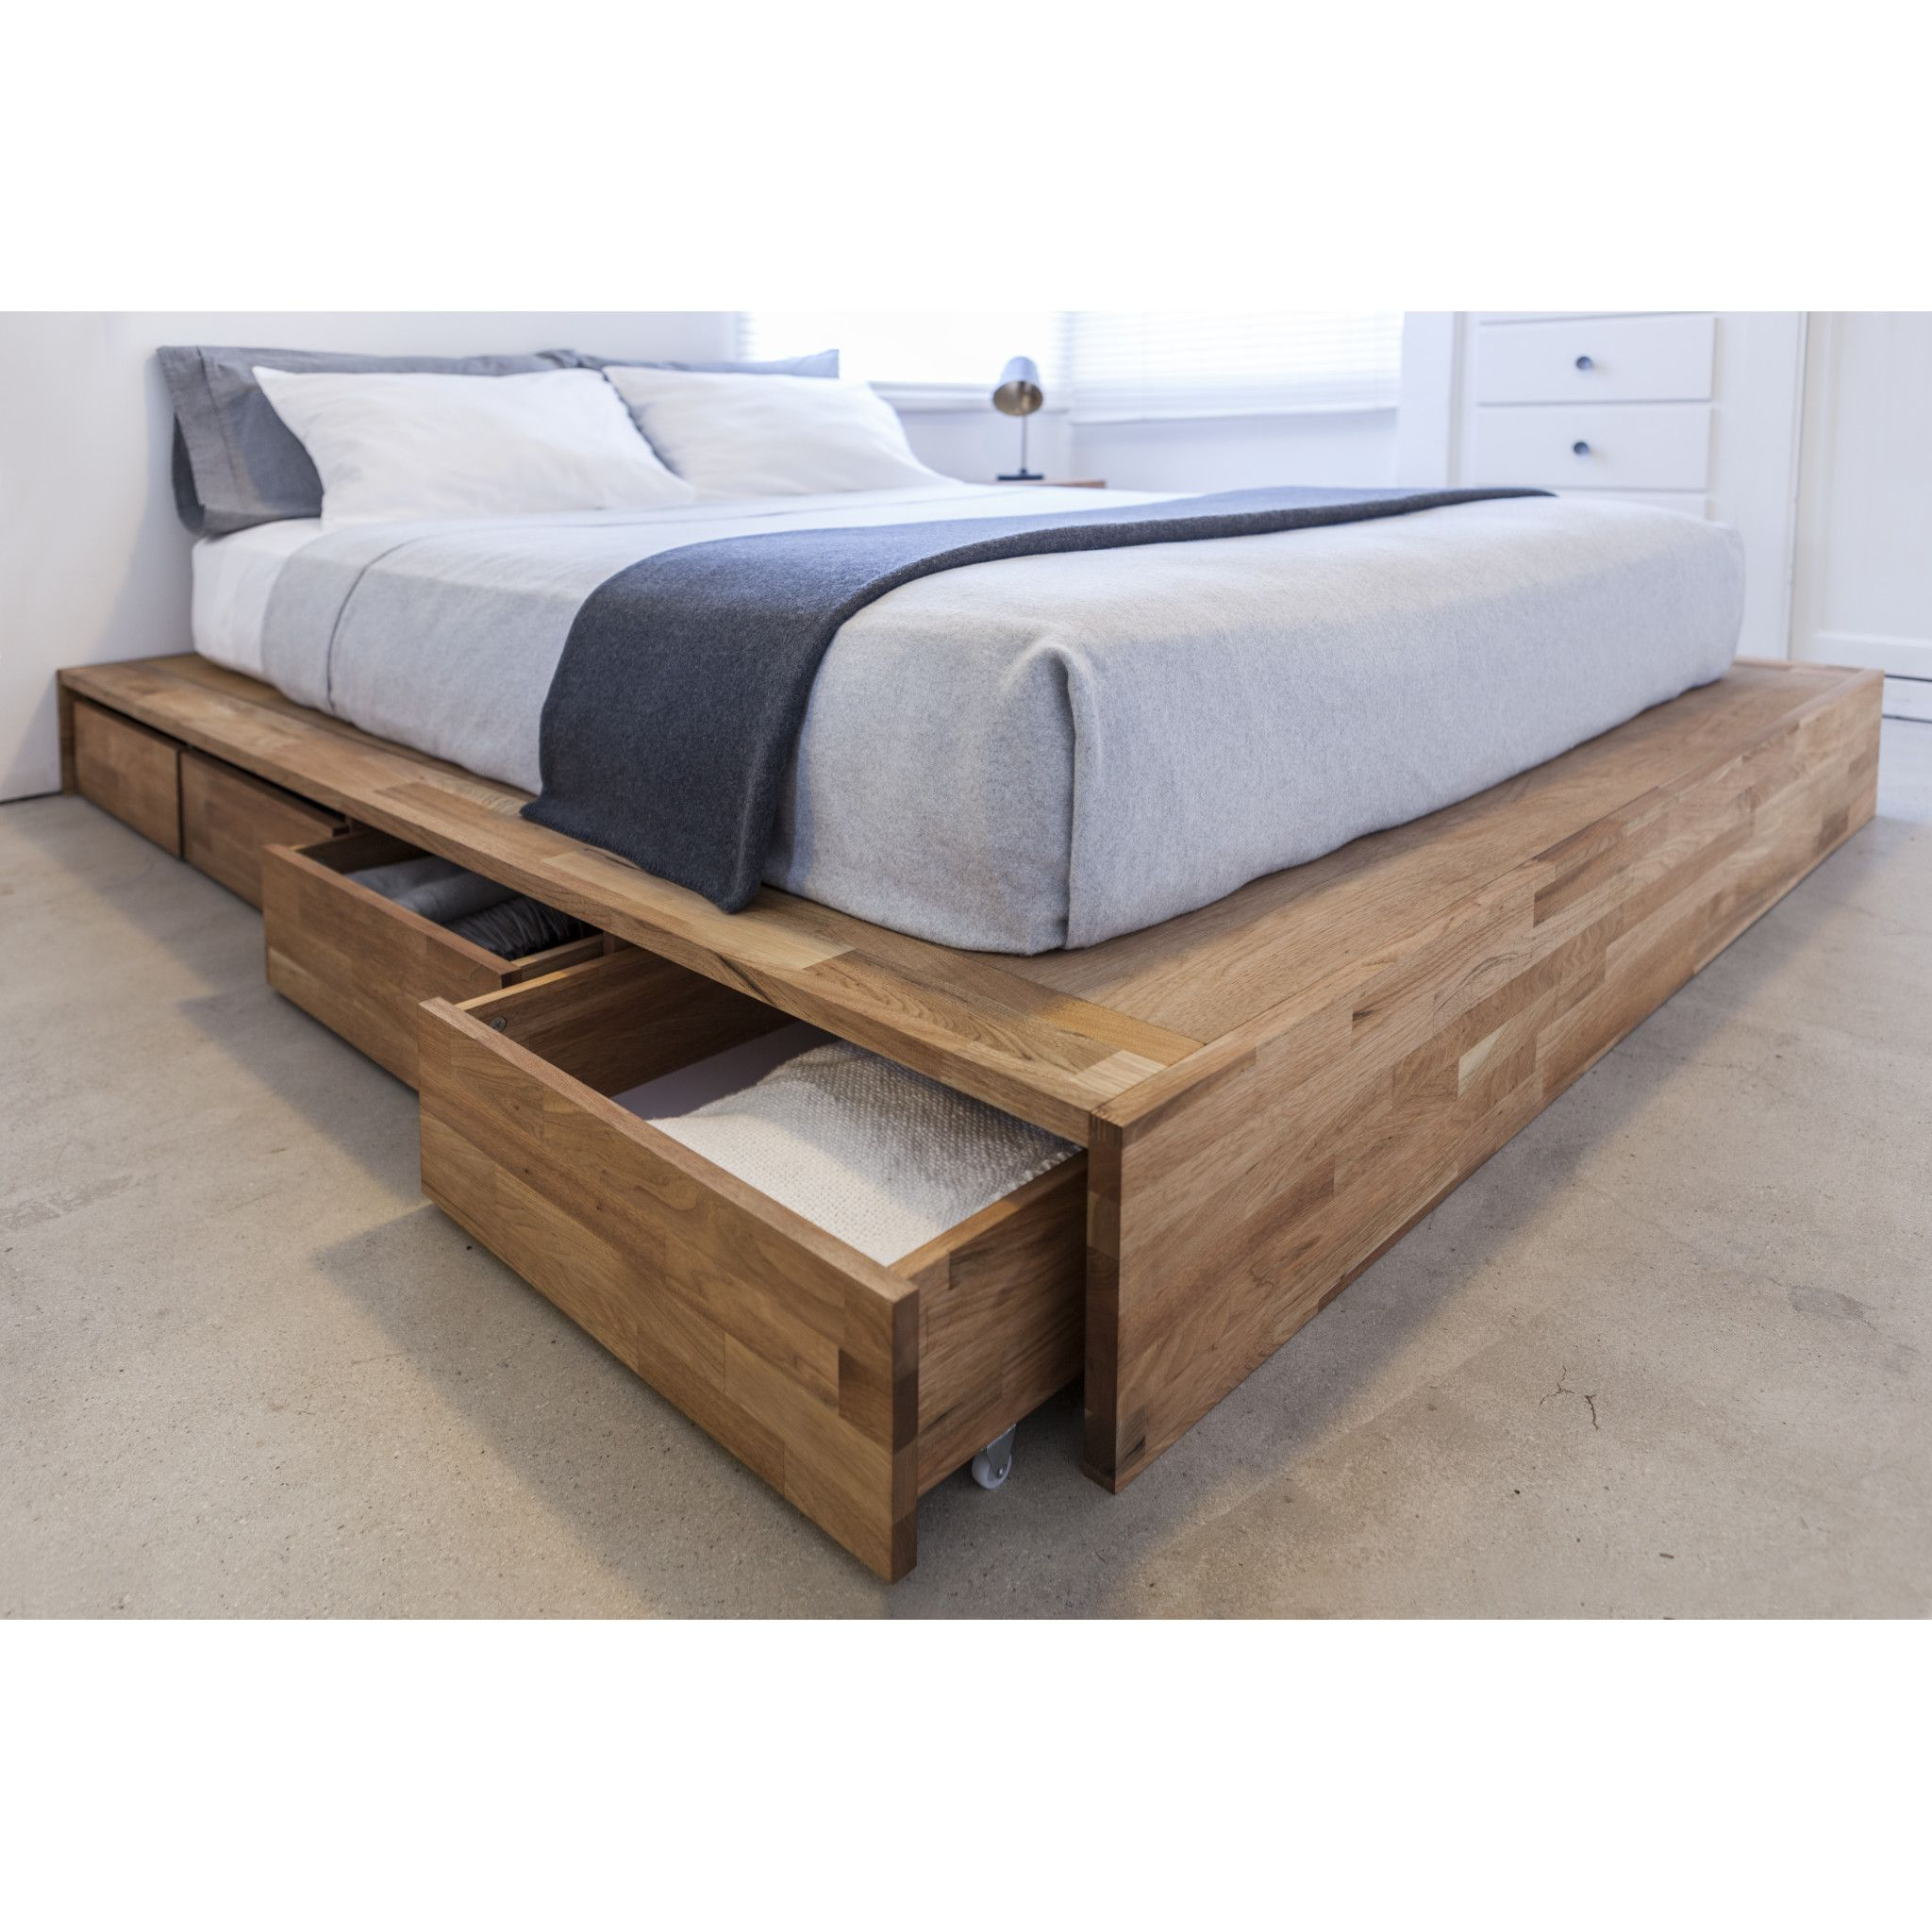 How To Build A Platform Bed For 50 Free Pdf Plans In 2020